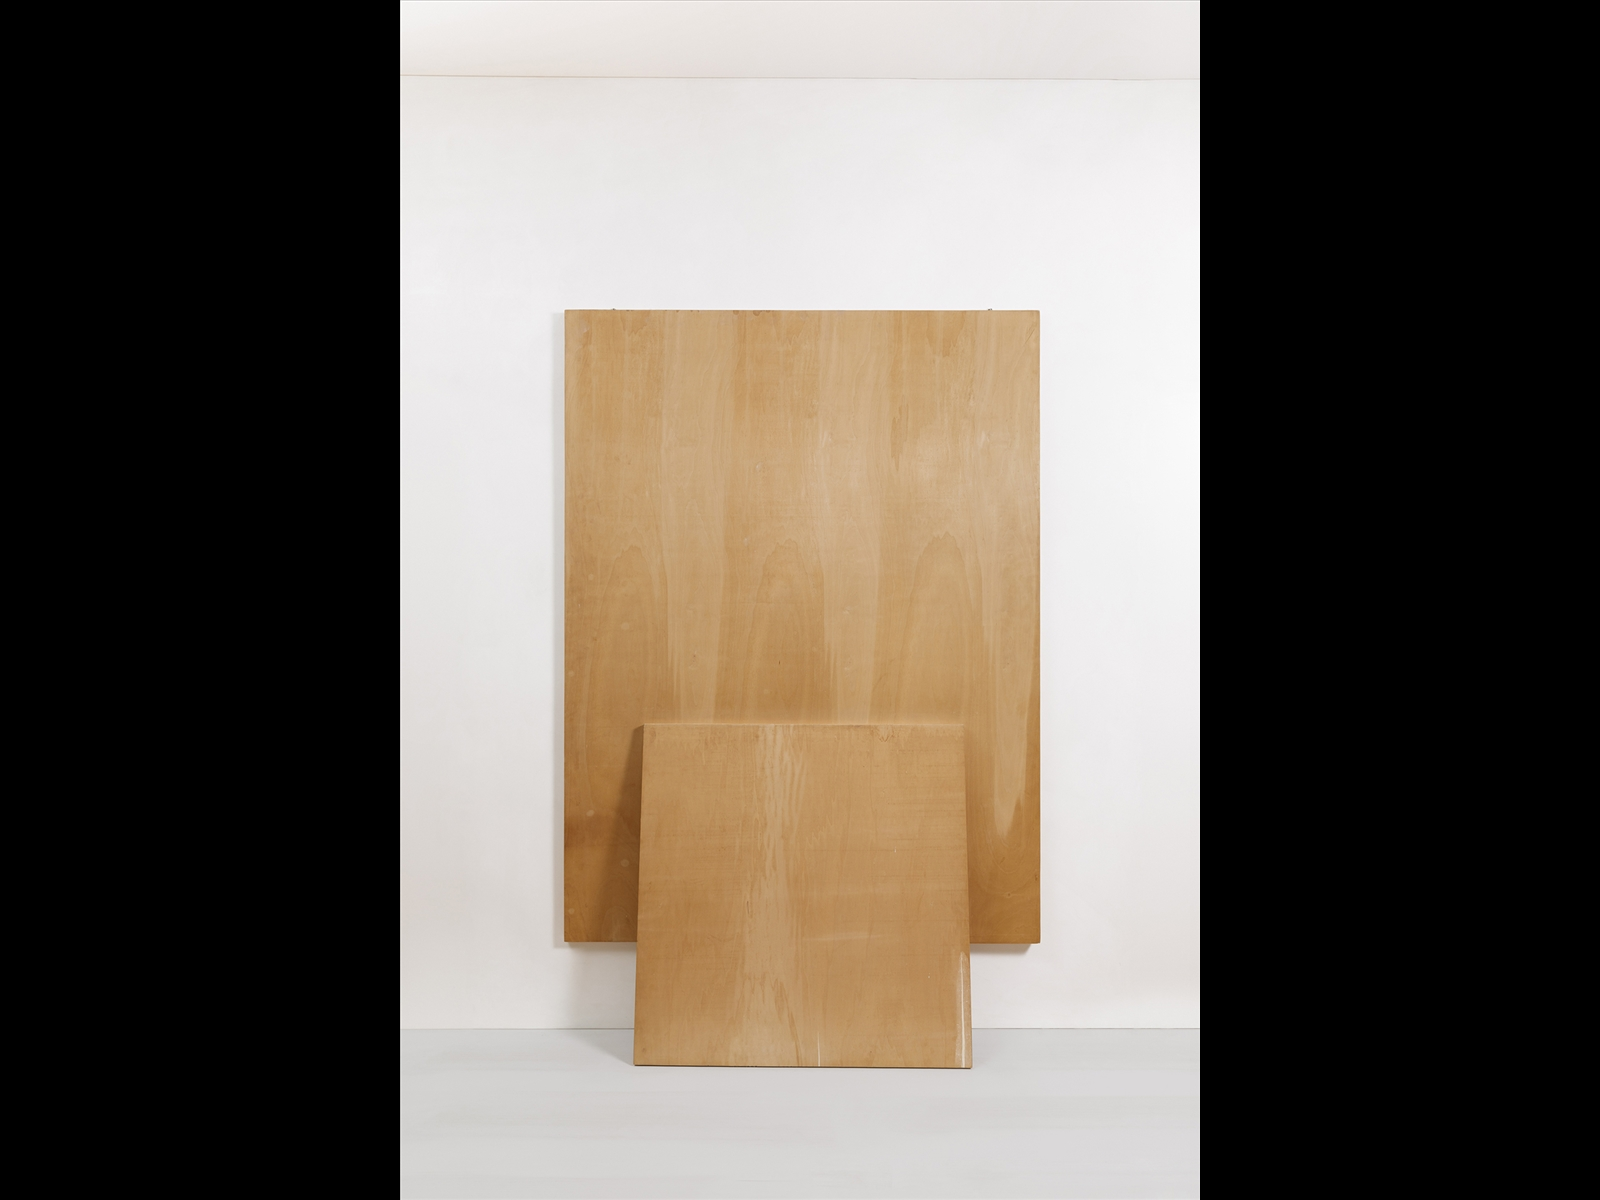 plywood boards, two elements, cm 200 x 150, cm 102 x 102. Private collection, Milano © Roberto Marossi